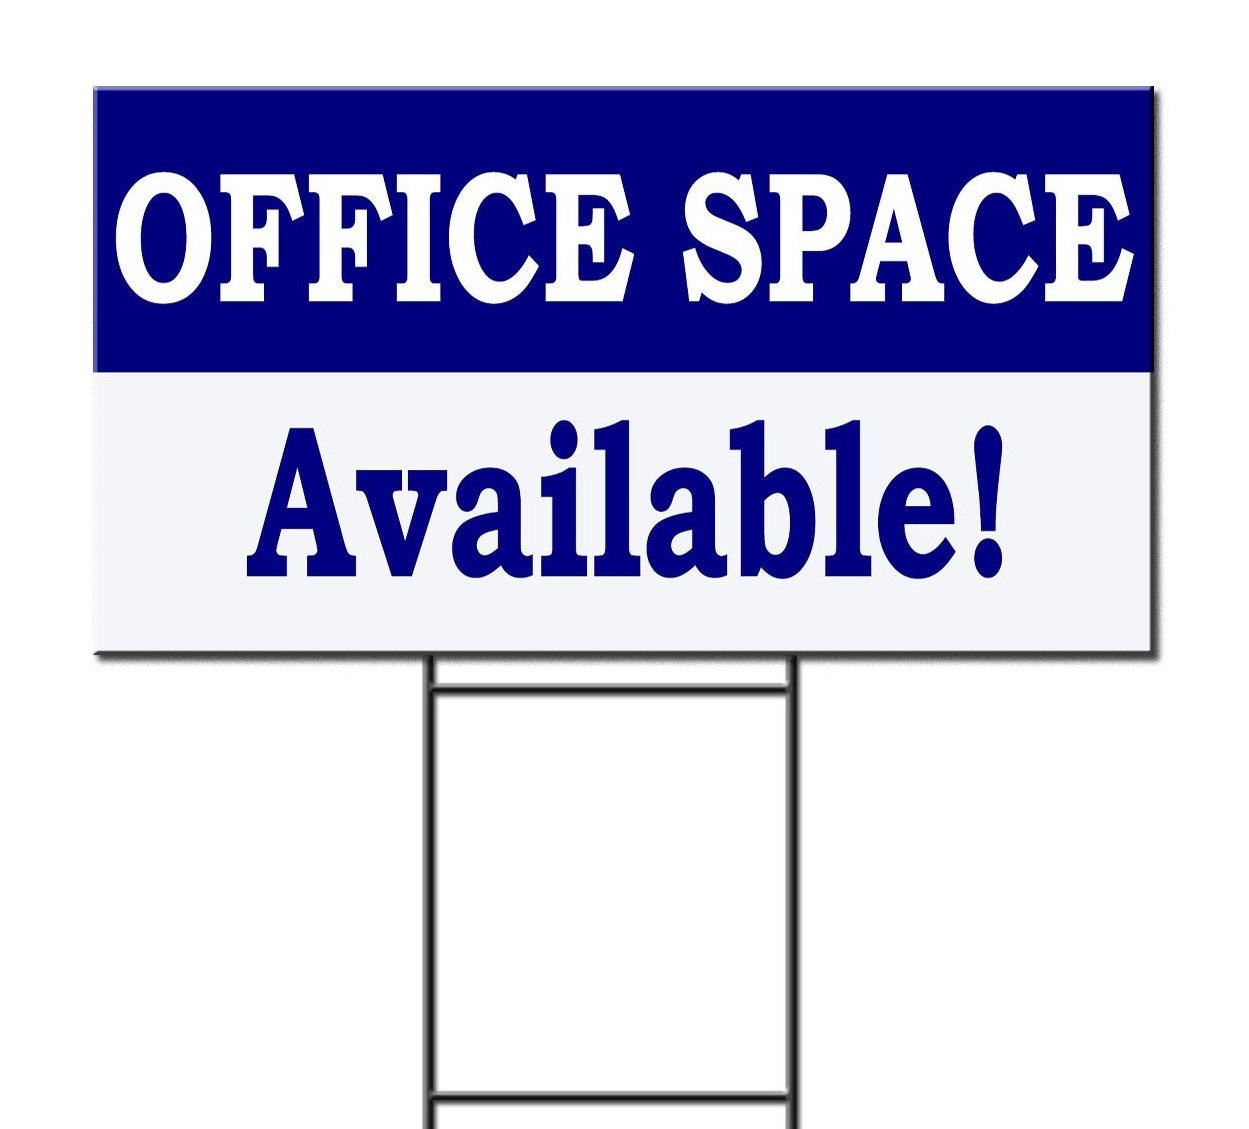 Whitelabel ITSolutions Has Office Space Available On-Site